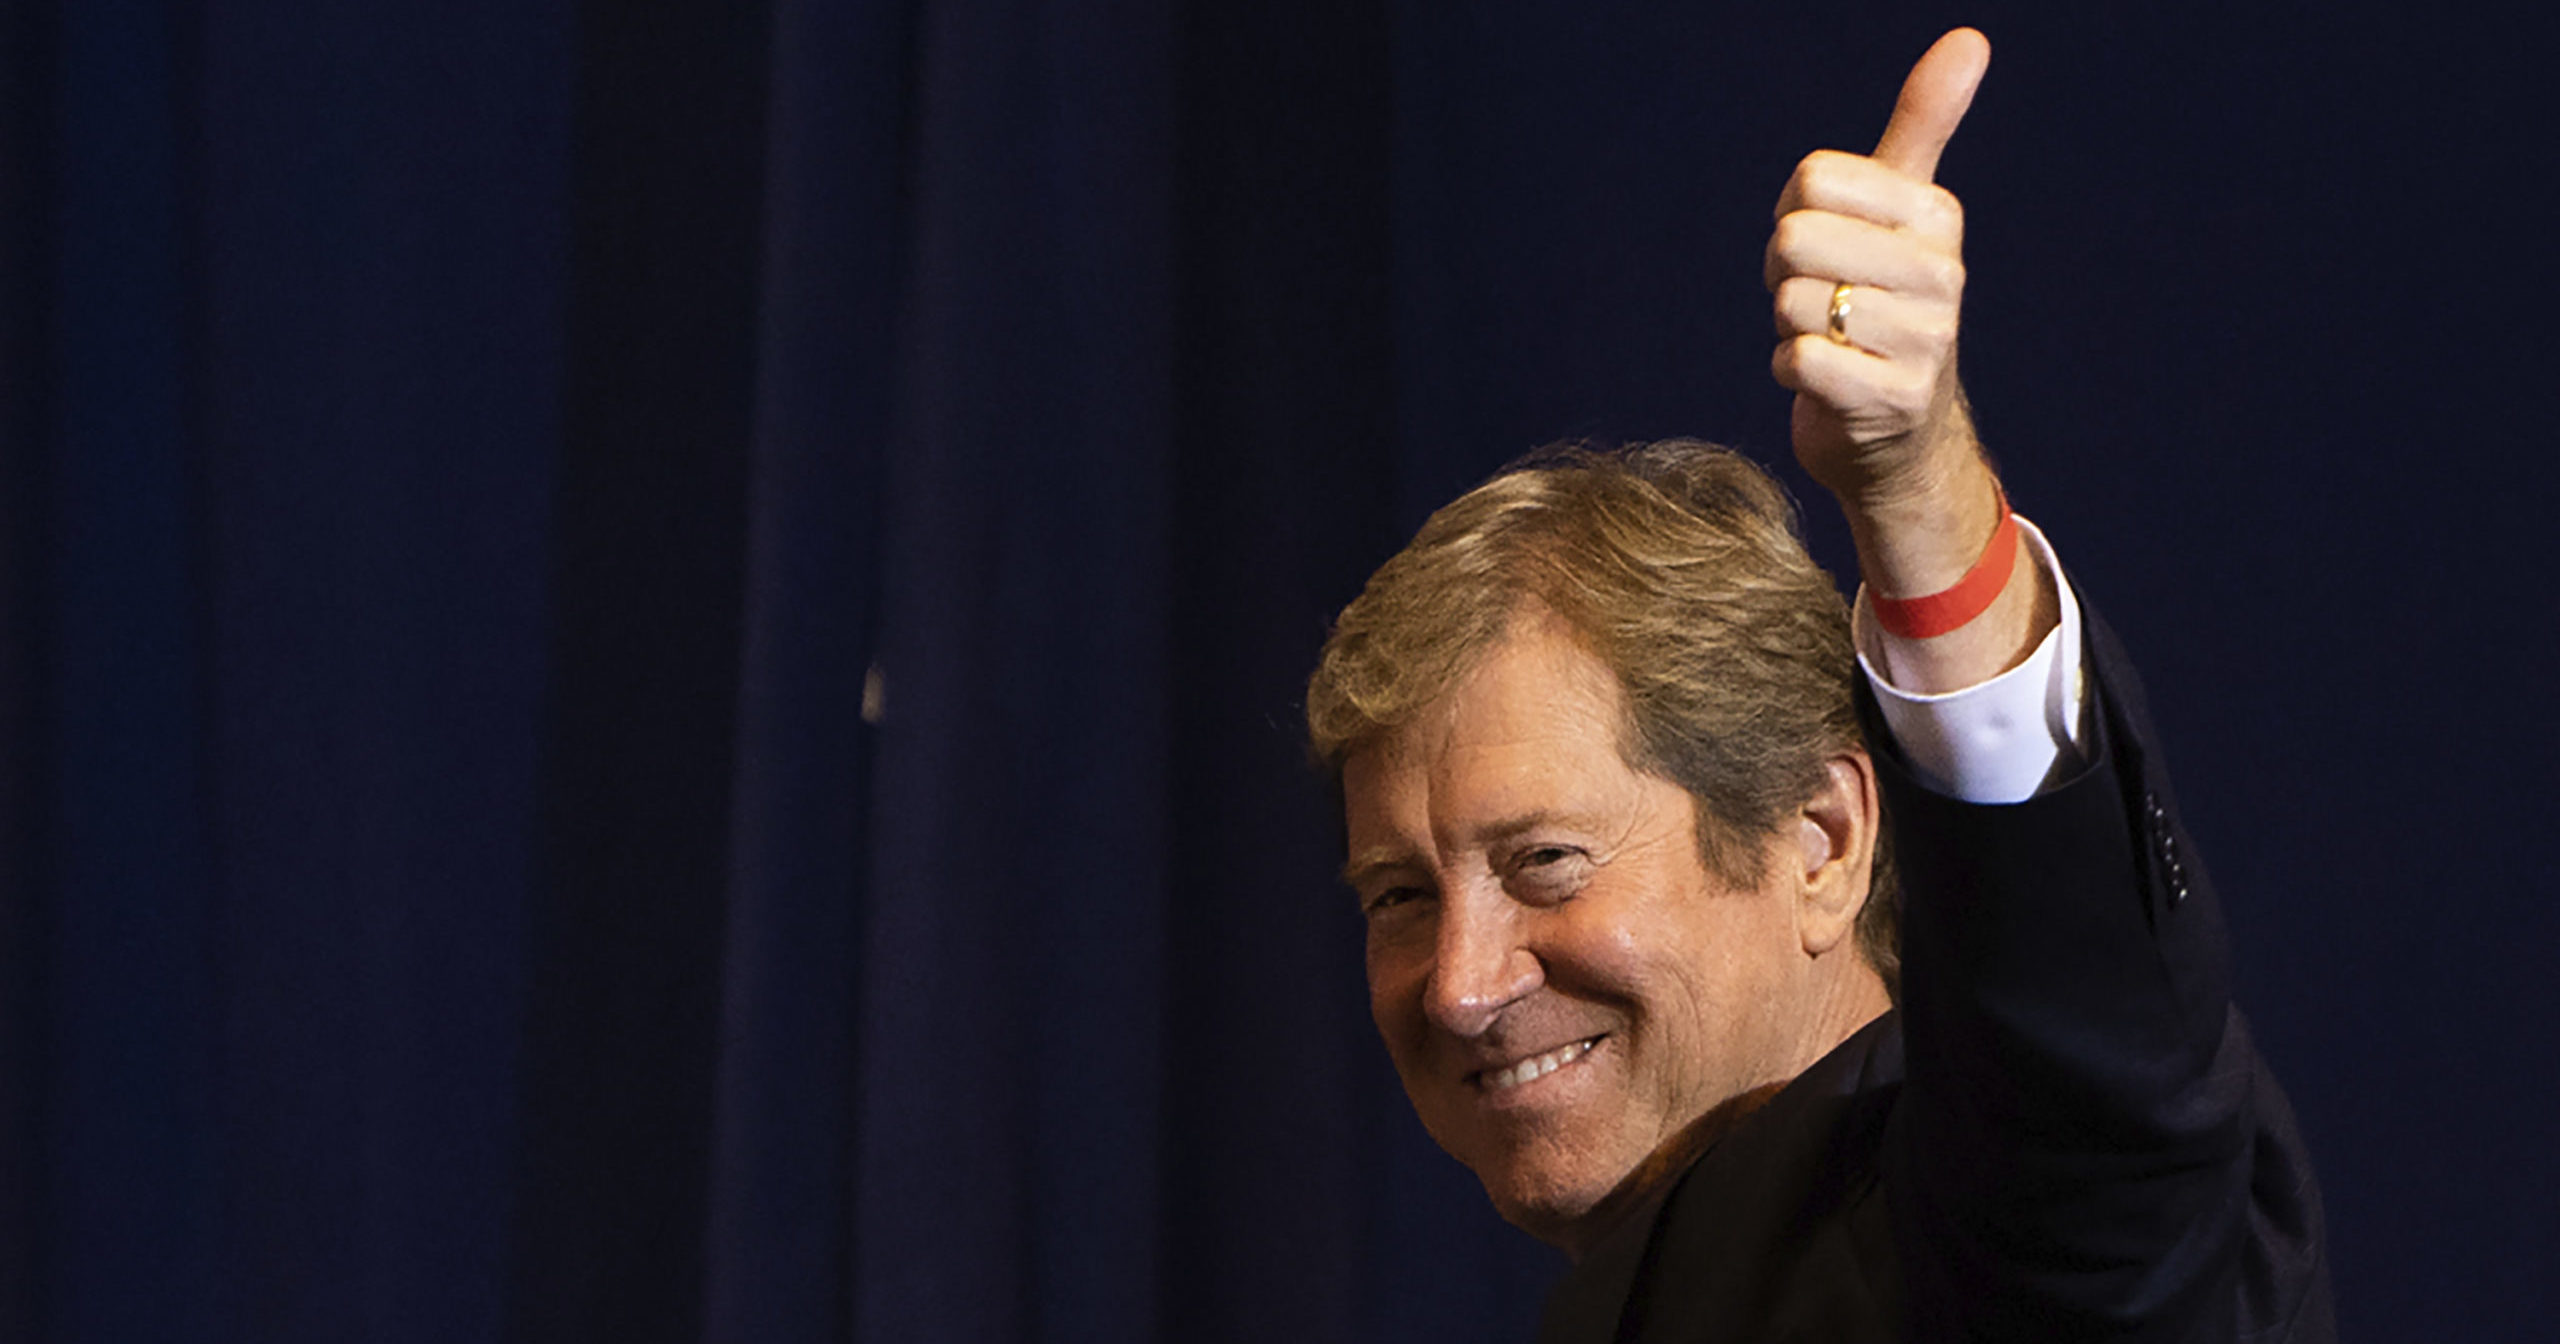 Republican Senate candidate Jason Lewis of Minnesota stands after being recognized by Vice President Mike Pence at Minneapolis-St. Paul International Airport on Sept. 24, 2020.